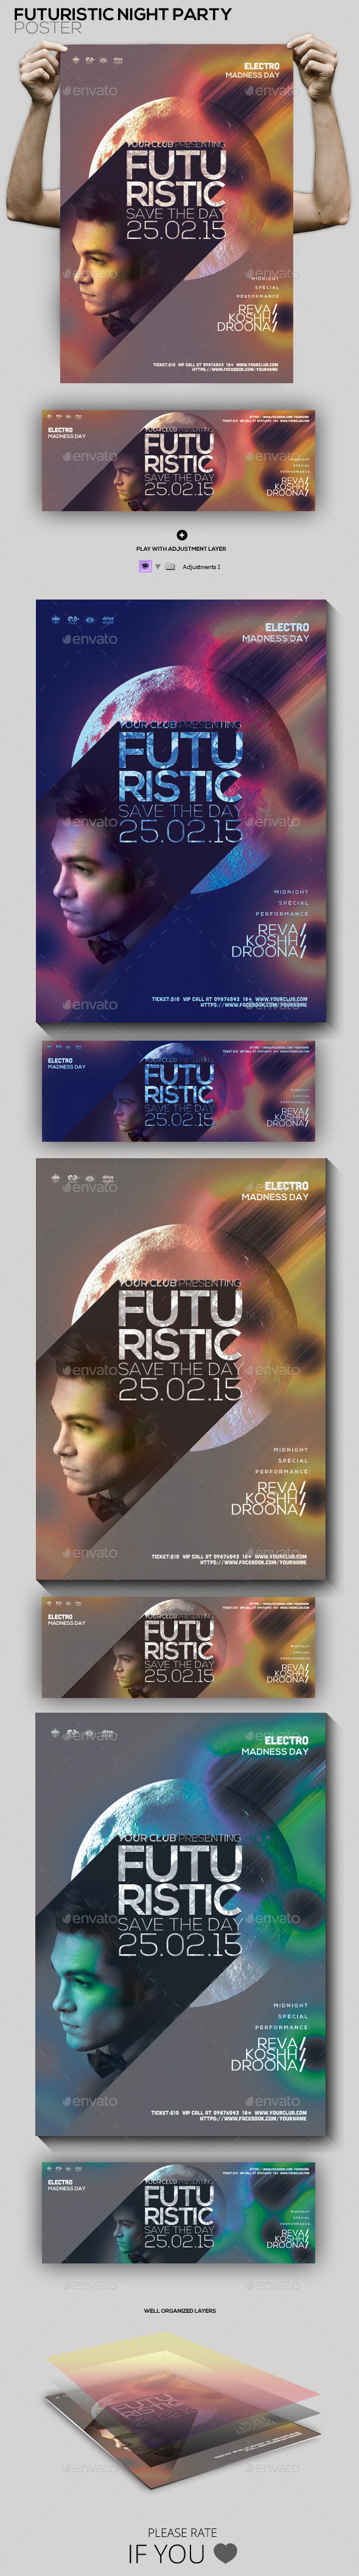 GraphicRiver Futuristic Guest Dj Party Flyer Poster 10265931